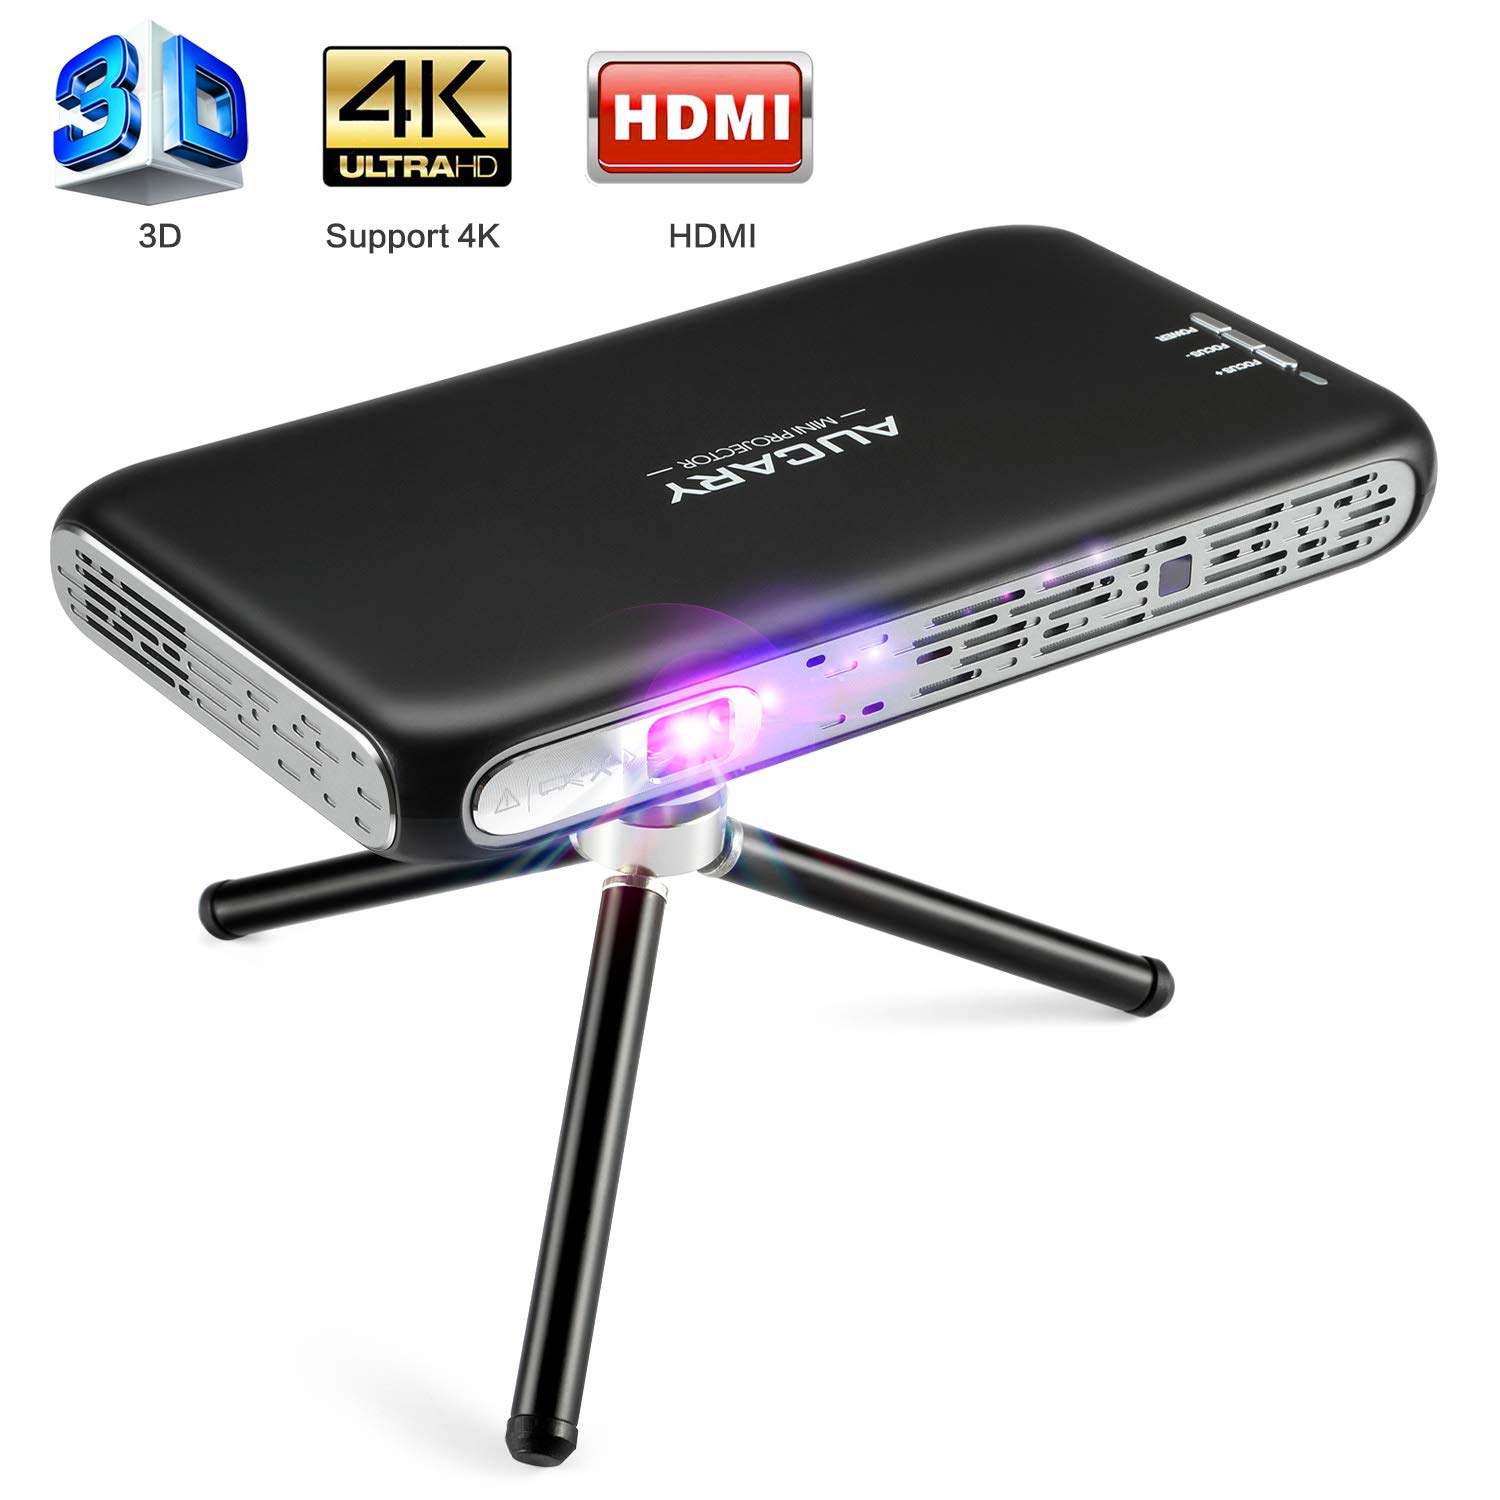 Mini Projector Portable, AUCARY Pico 3D Projector for Home Cinema. Support 1080P and 4K Movies, with Android 6.0,Built-in Battery, Upgrade Stereo Speakers, Wireless Mirroring, WiFi, HDMI,USB